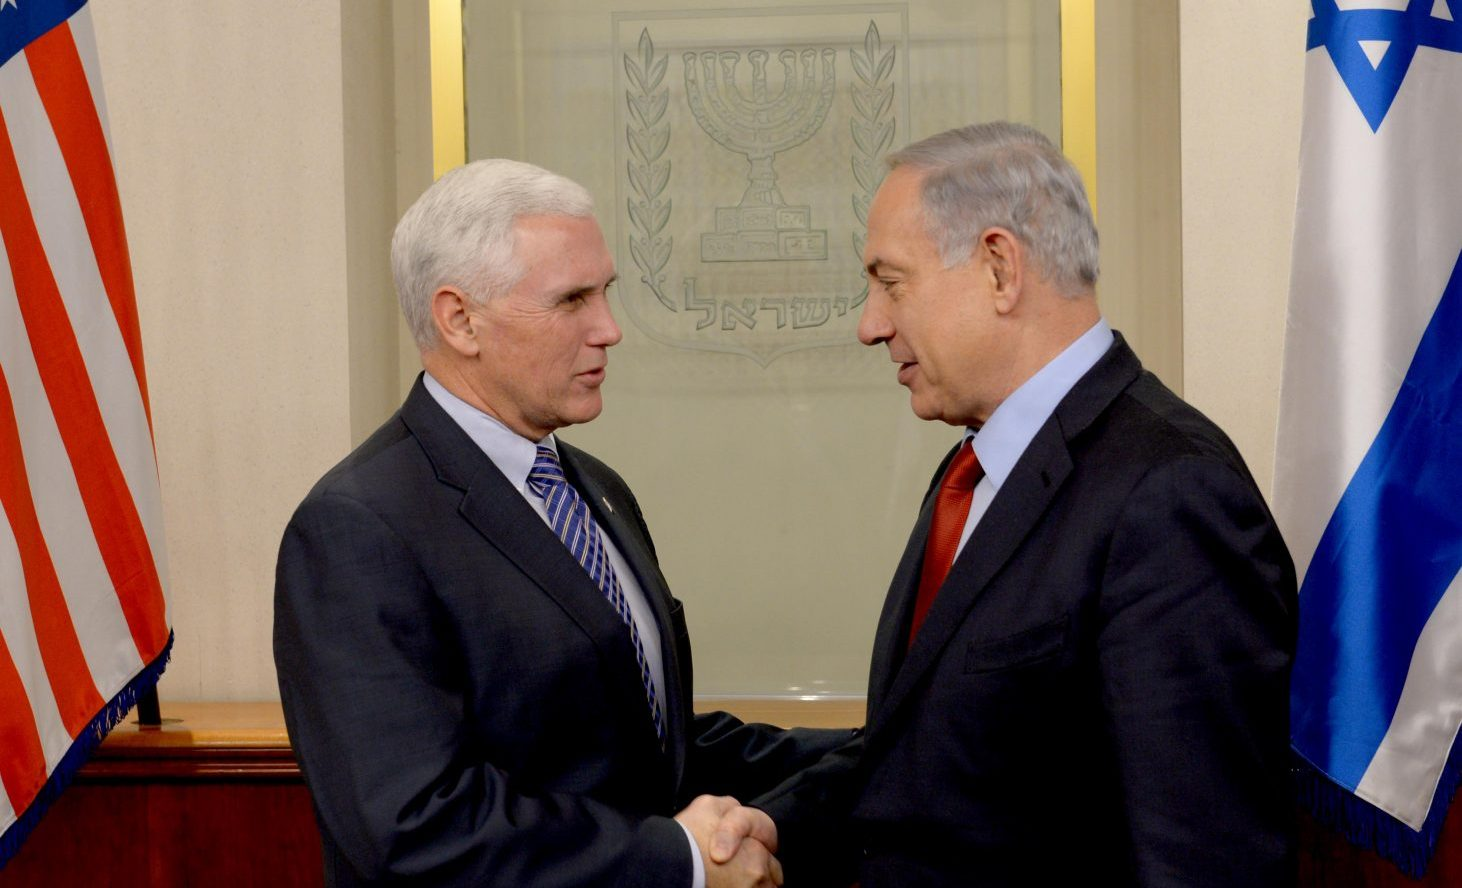 Prime Minister Benjamin Netanyahu meets with Mike Pence at the Prime Minister Offics in Jerusalem.